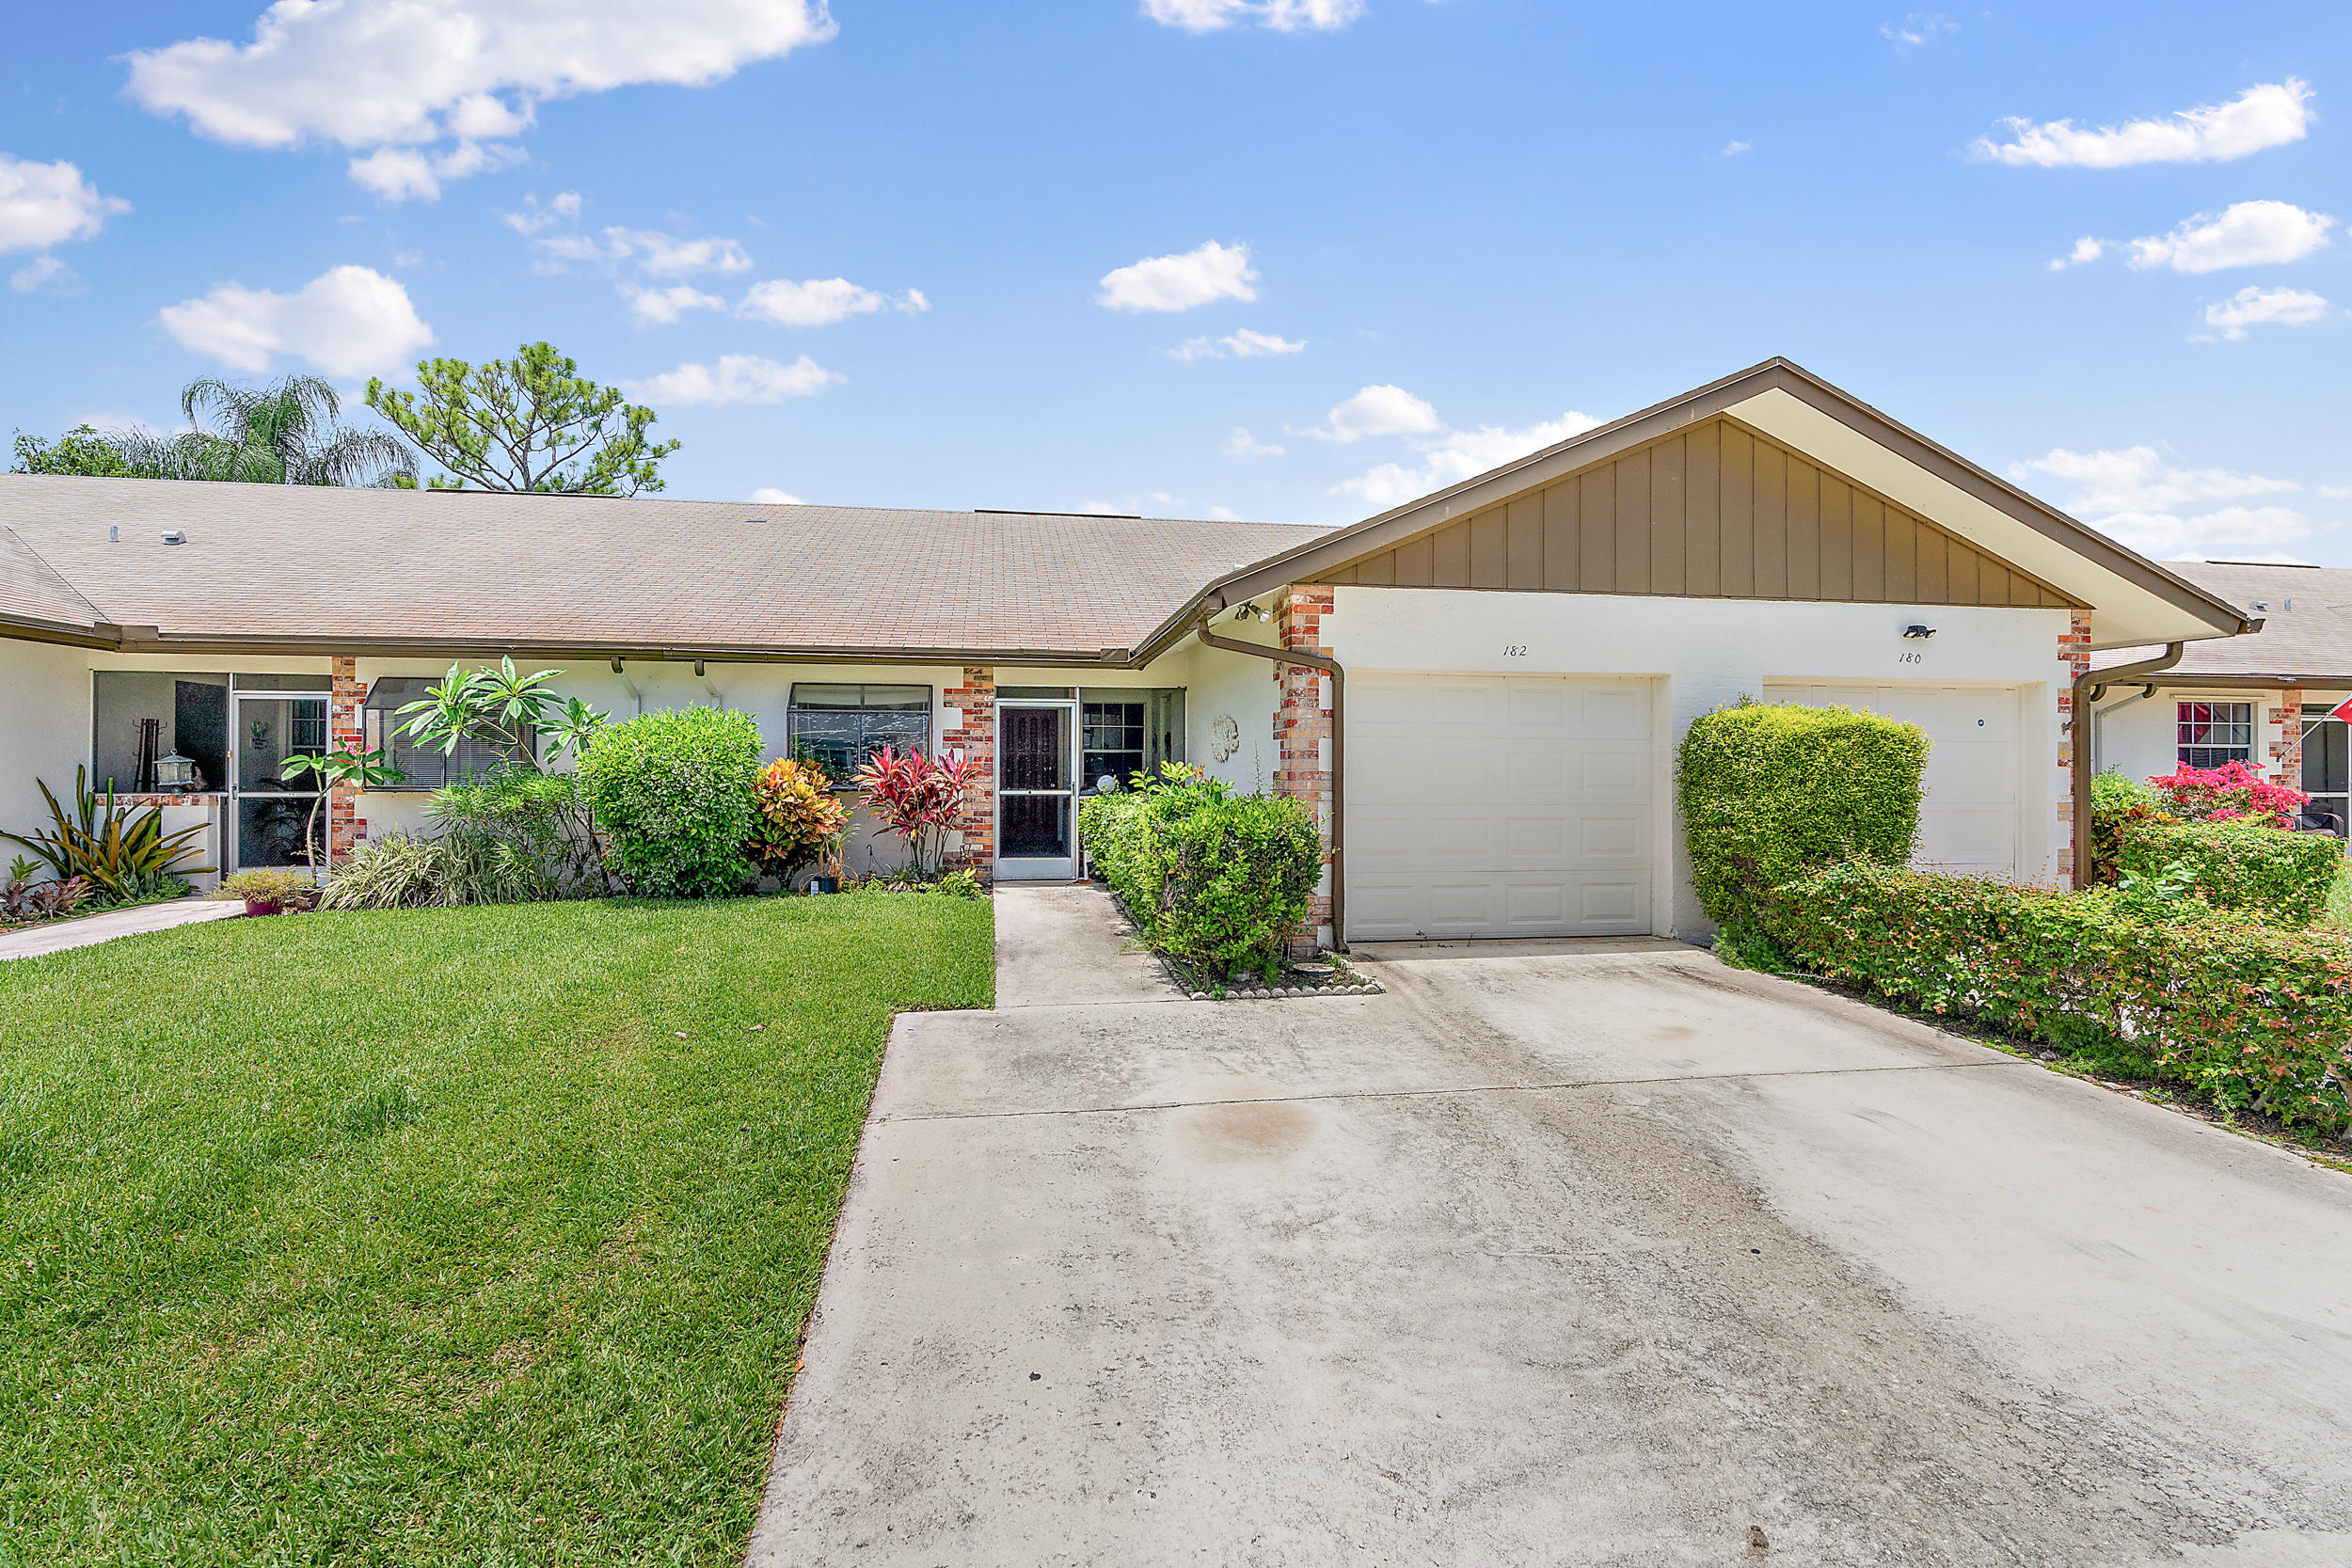 Quaint villa in Indian Creek. Two bedrooms, two full baths and one car garage. Ideal location close to everything Jupiter has to offer. Newer A/C, water heater. Laminate wood flooring in living area and new carpets in bedrooms. Cozy back patio with private view. Low HOA.